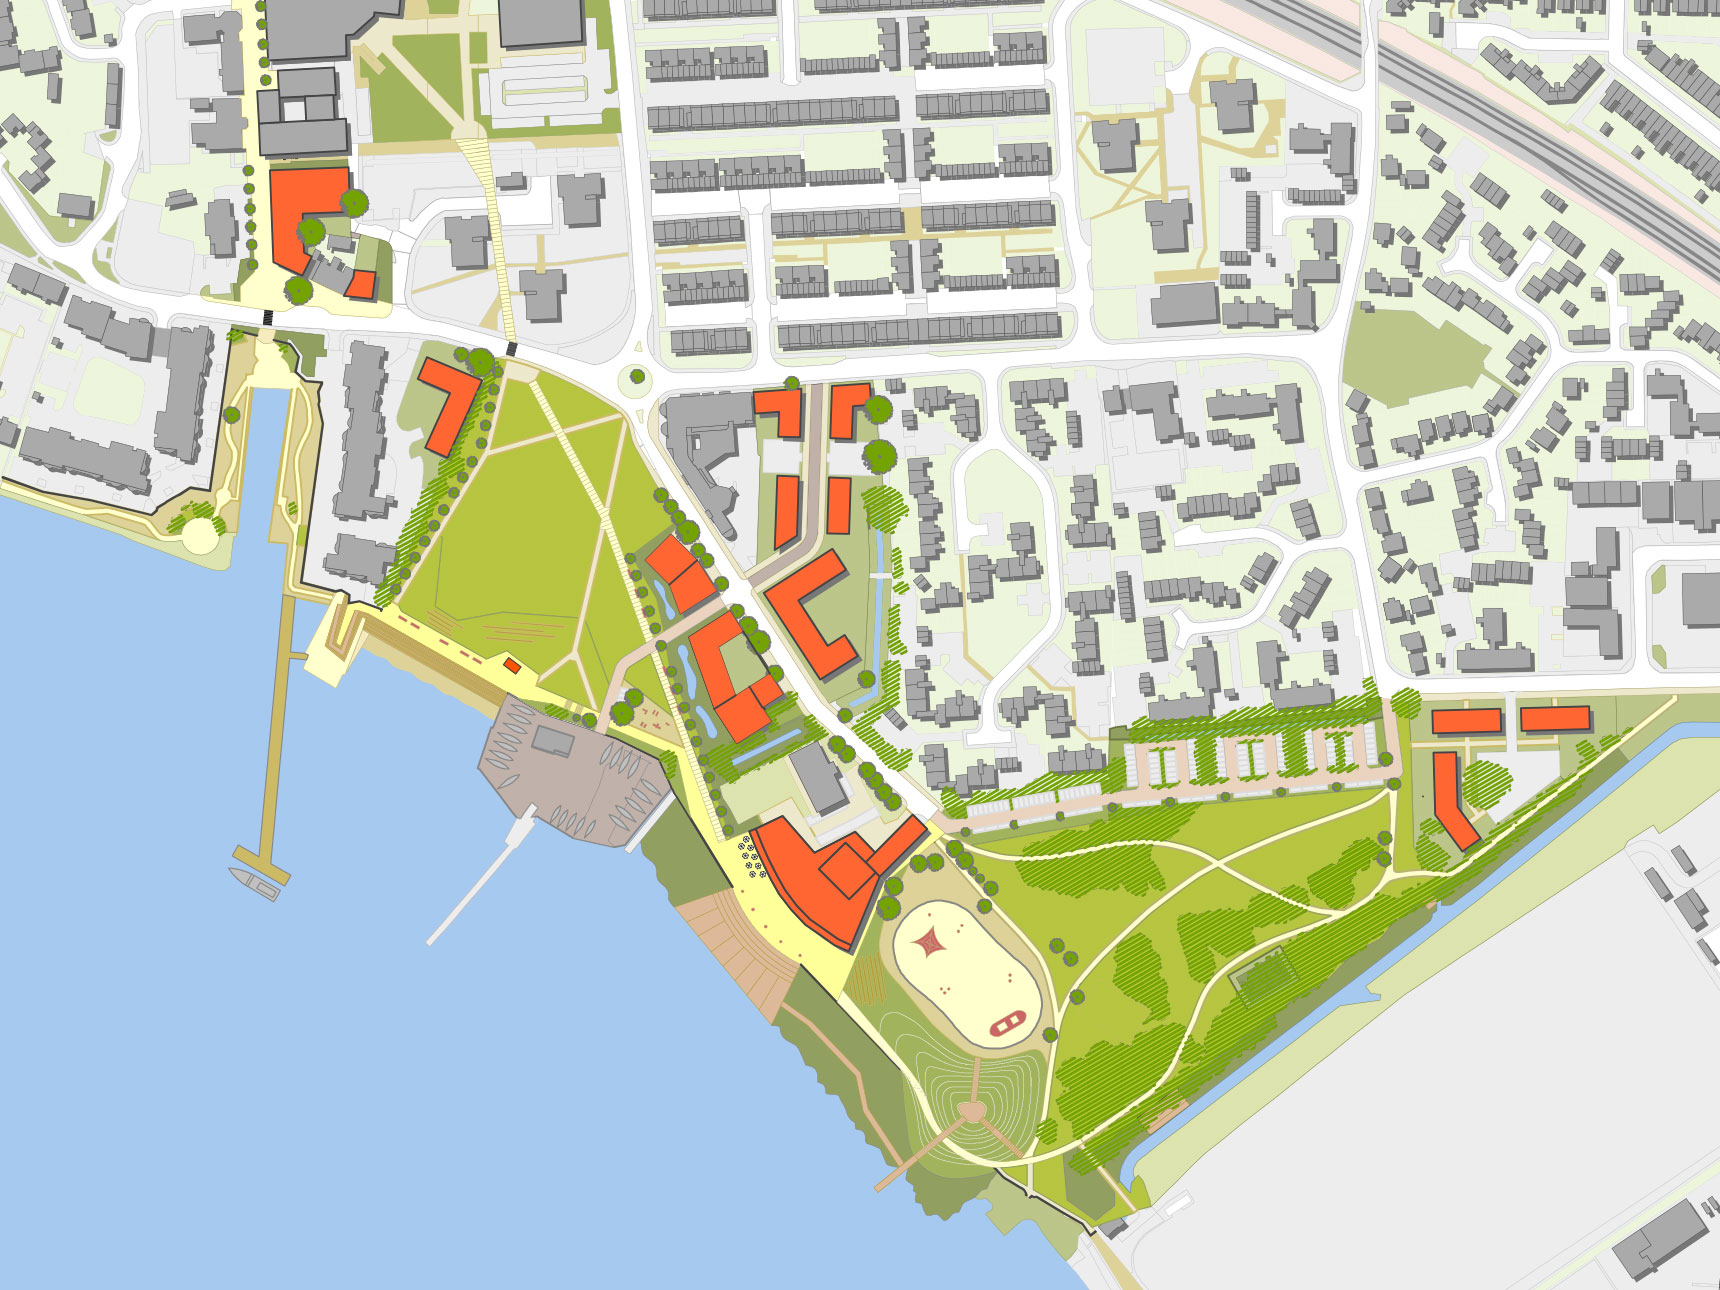 //uistudio.co.uk/wp-content/uploads/2015/11/4054_Grays-Town-Centre_Masterplan_1720x1290.jpg